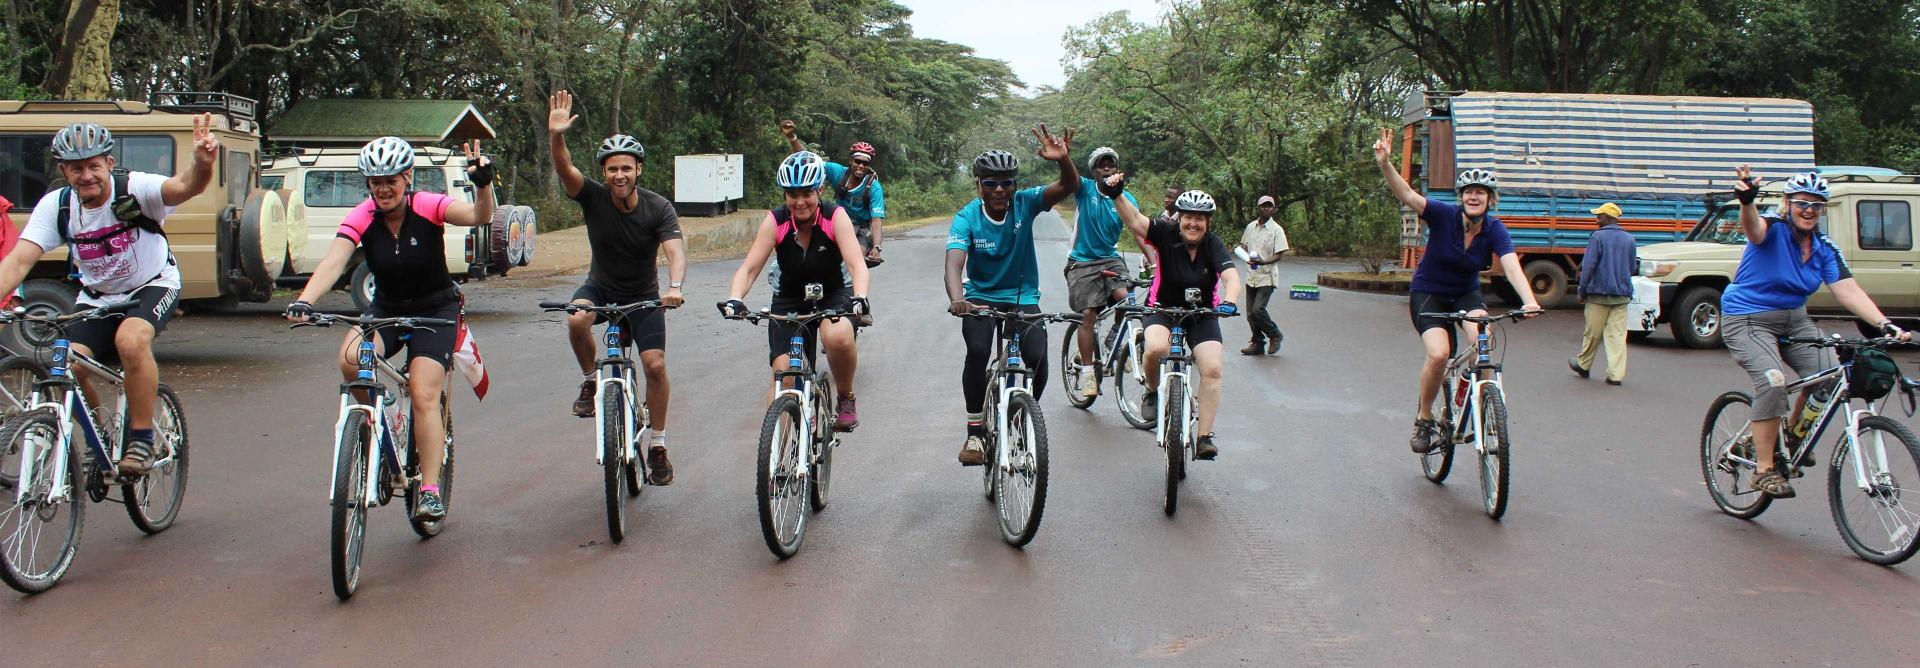 Cycle Kenya riders